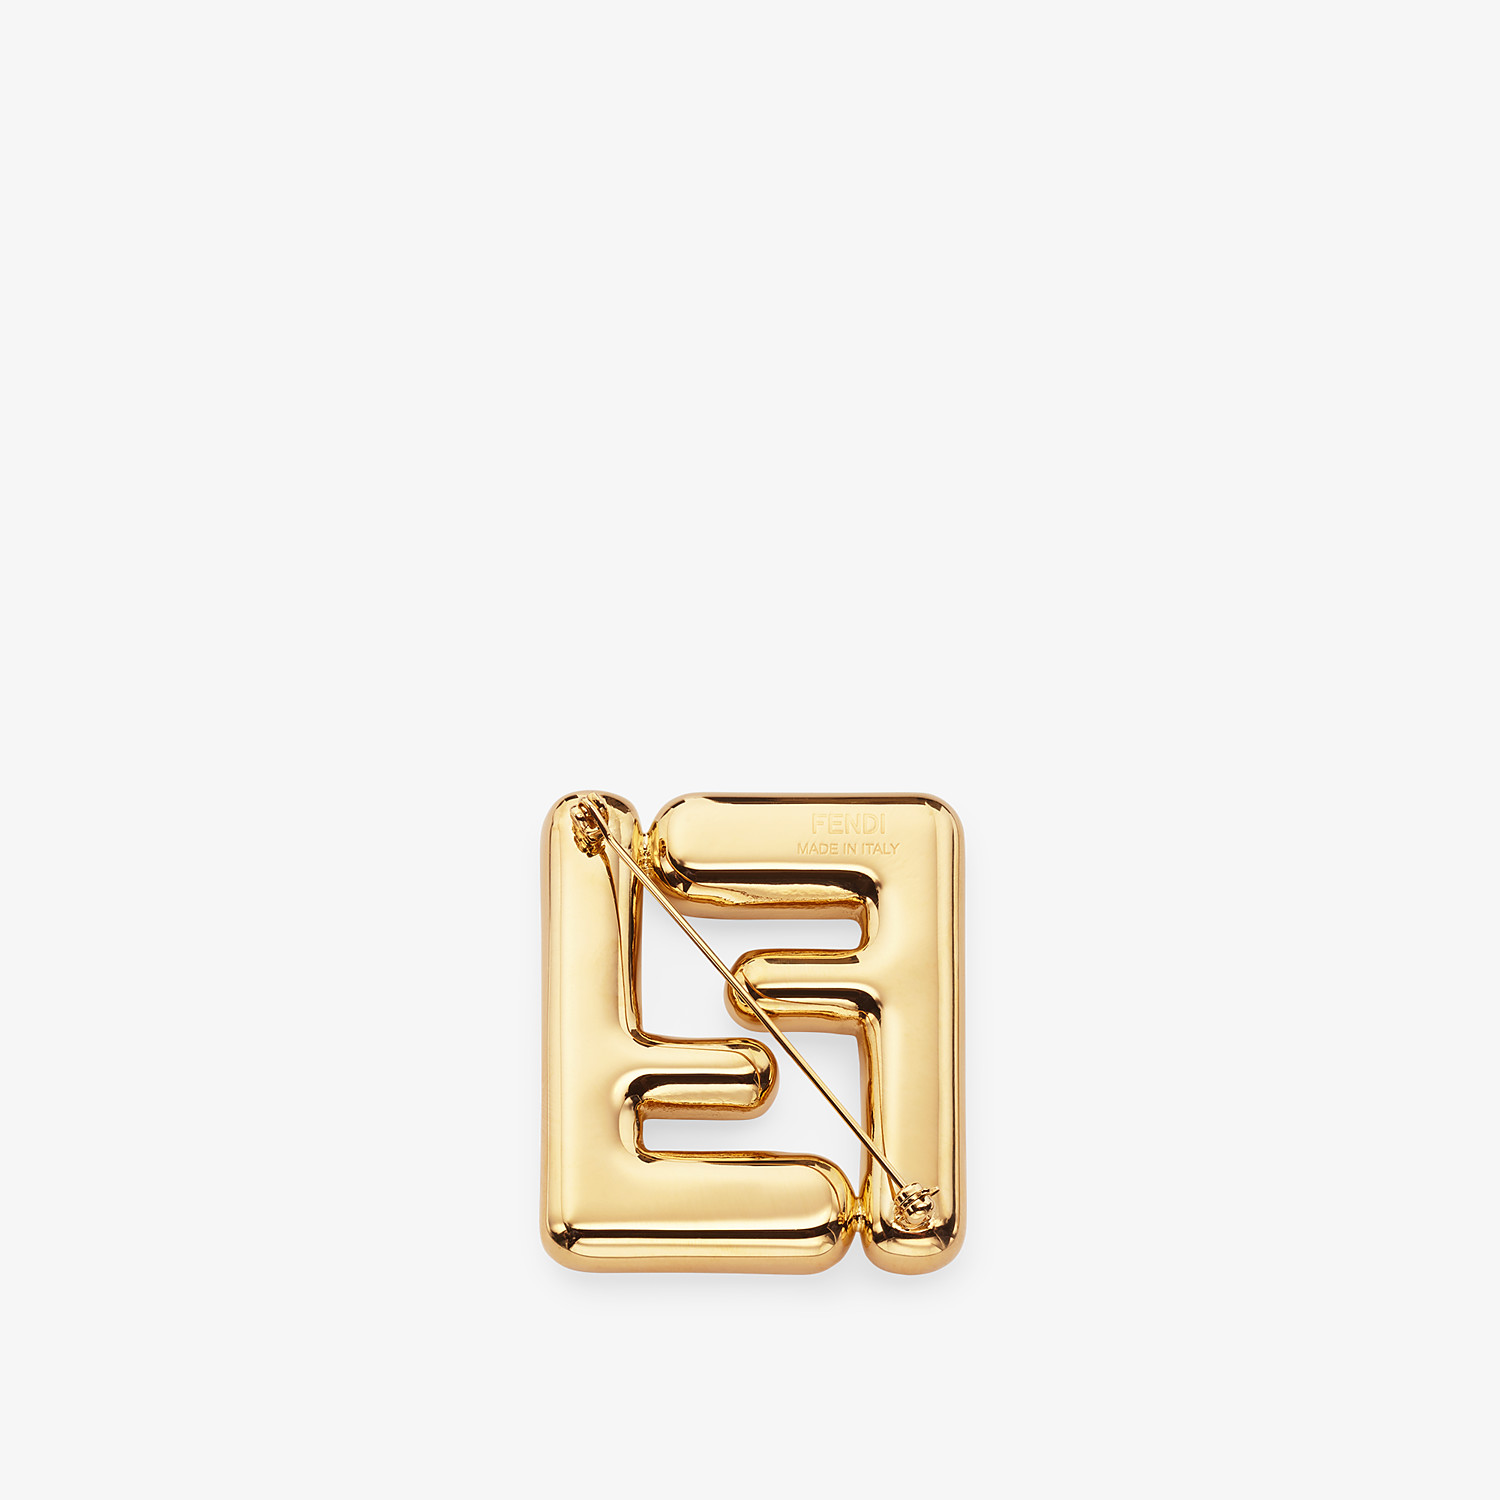 FENDI MAXI LOGO BROOCH - Gold-colored brooch - view 2 detail